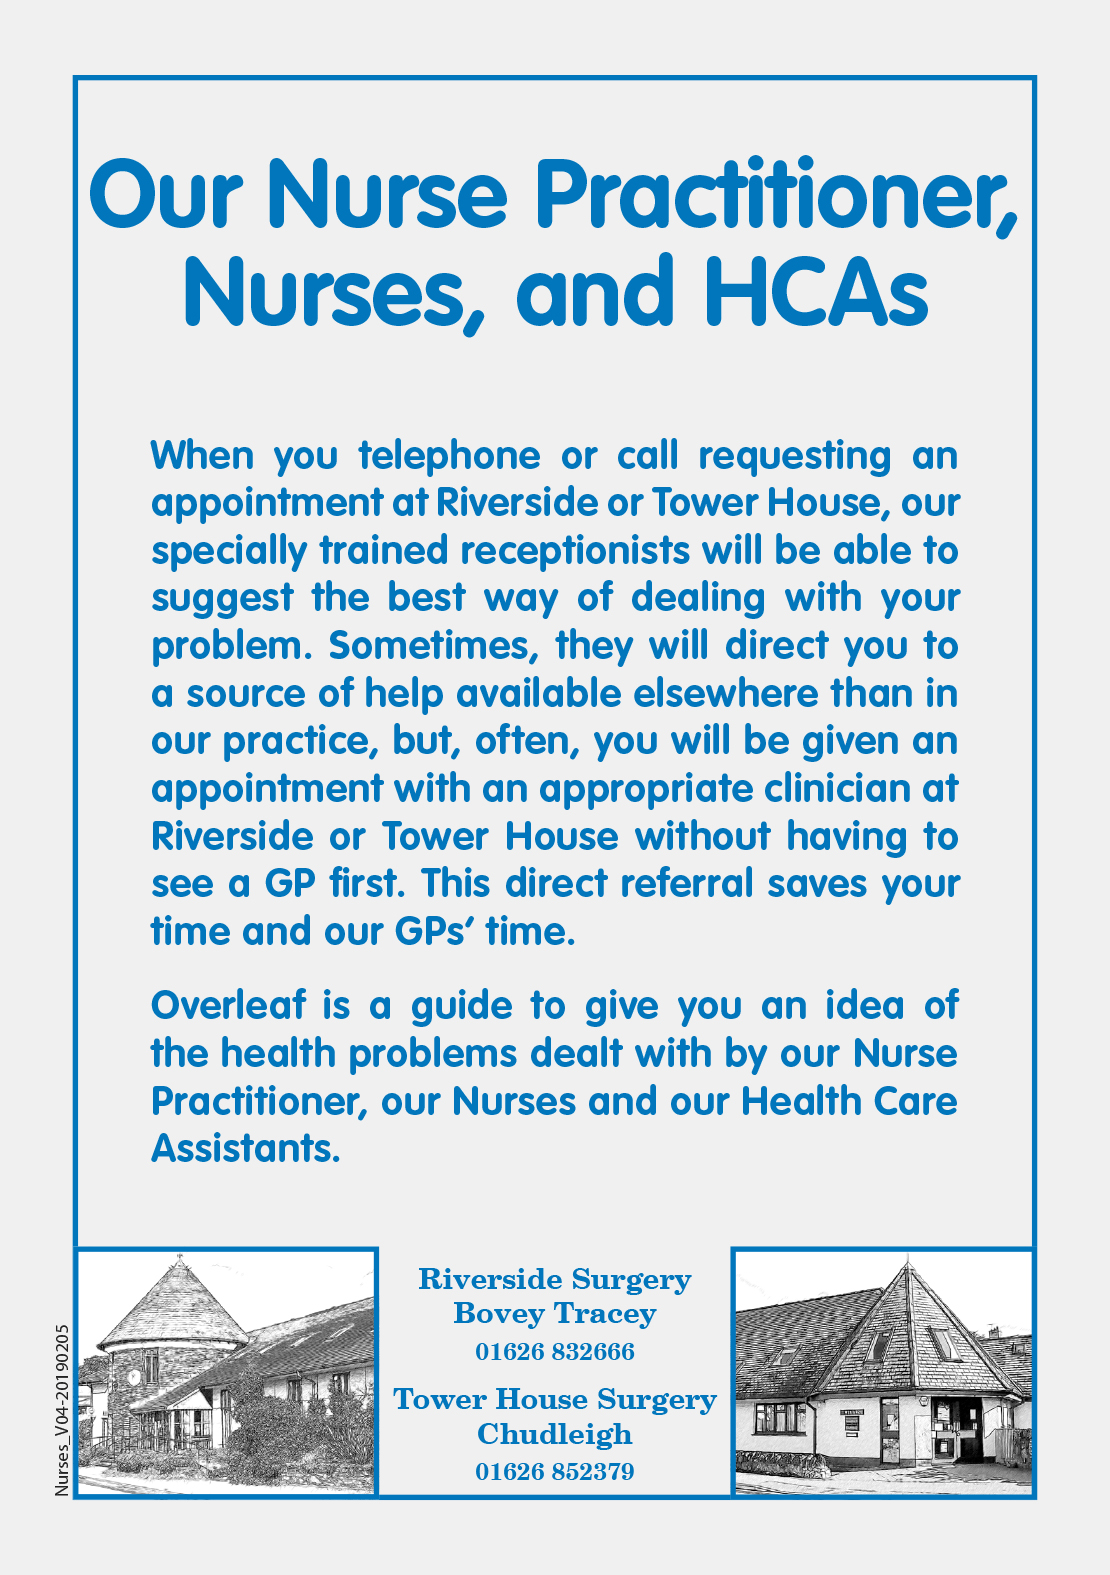 Click here for the Our Nurse Practitioner, Nurses and HCAs Leaflet